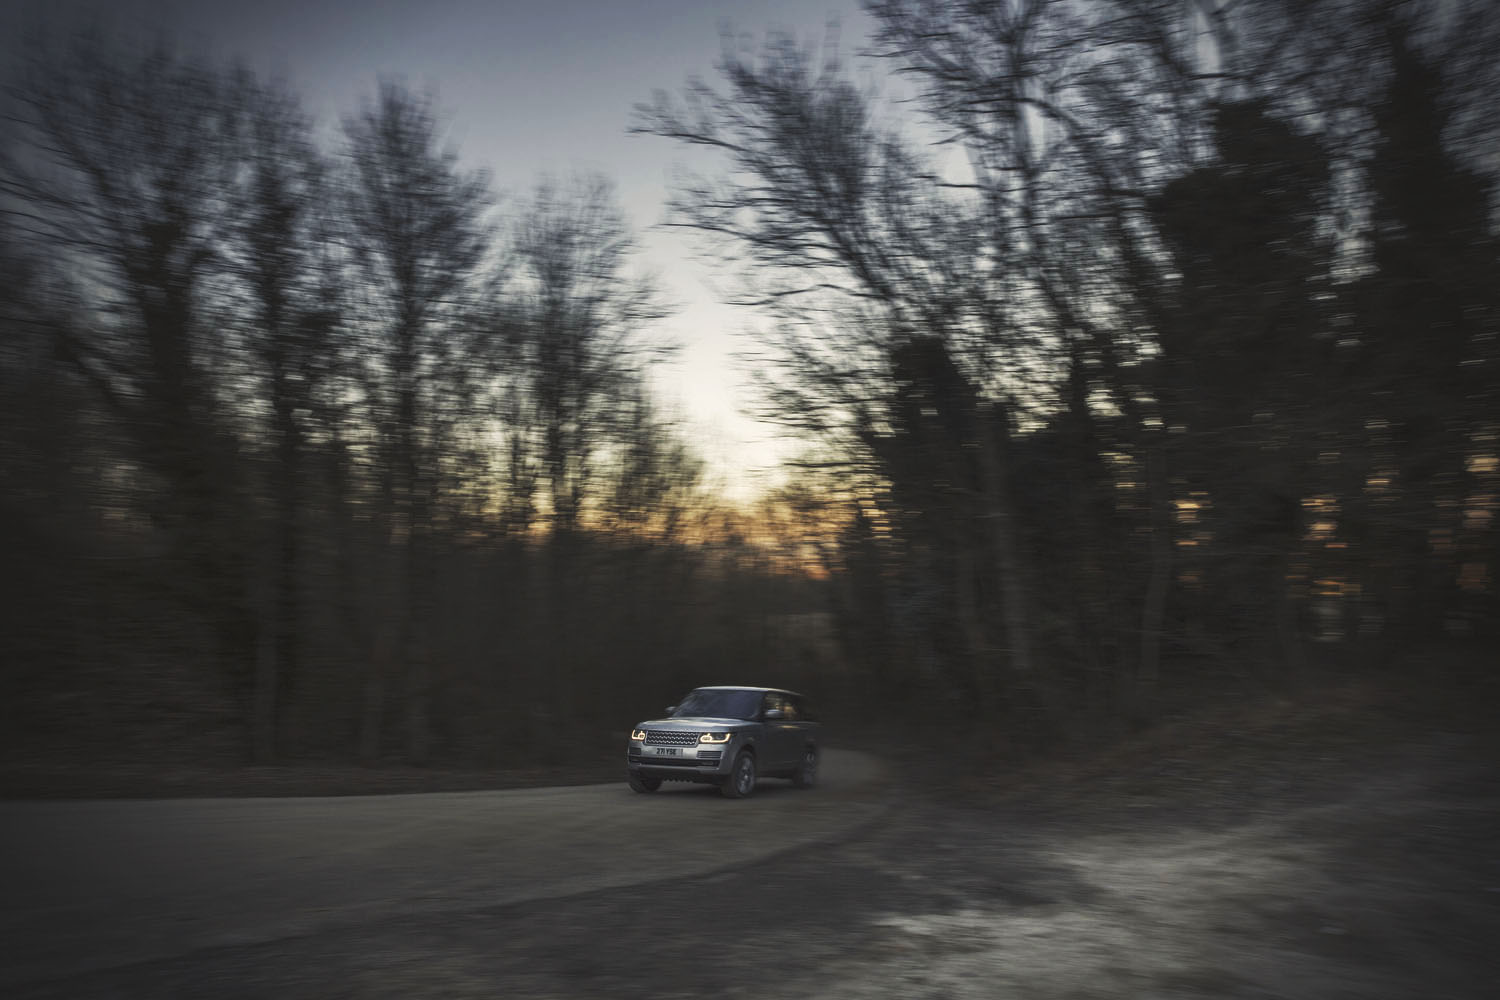 Sunset through woods Range Rover Commercial advertising automotive photography shoot.  off road in the Sussex for Land Rover. Packshot. Highlighting the Great British Outdoors, craftmanship, rural life and heritage brands. food photography still life.